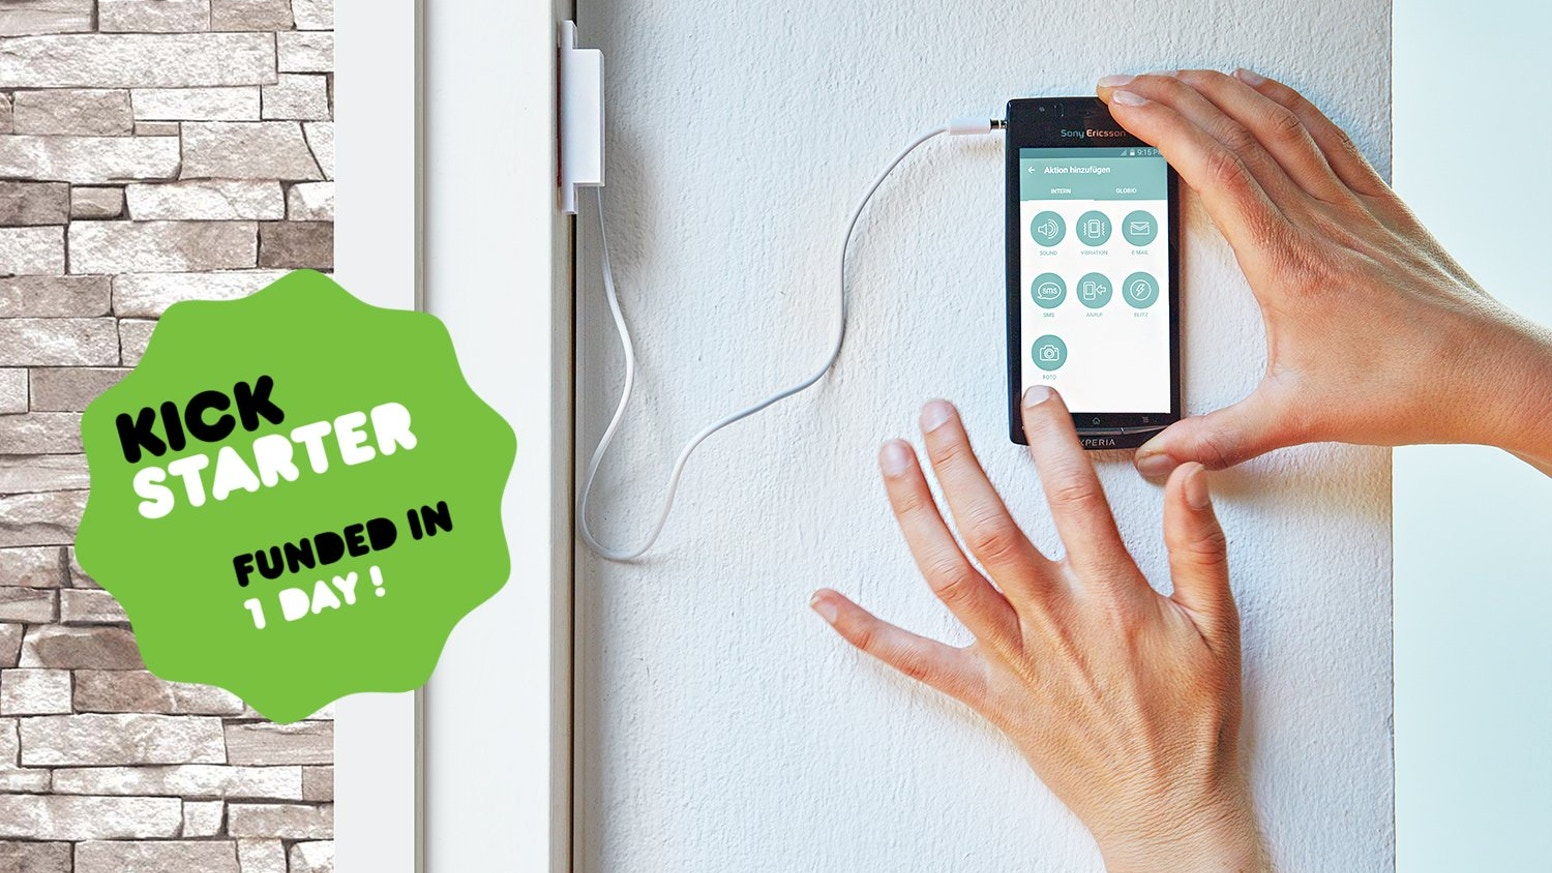 Use globio #Jacky together with your old smartphone to build world's easiest video surveillance home alarm.